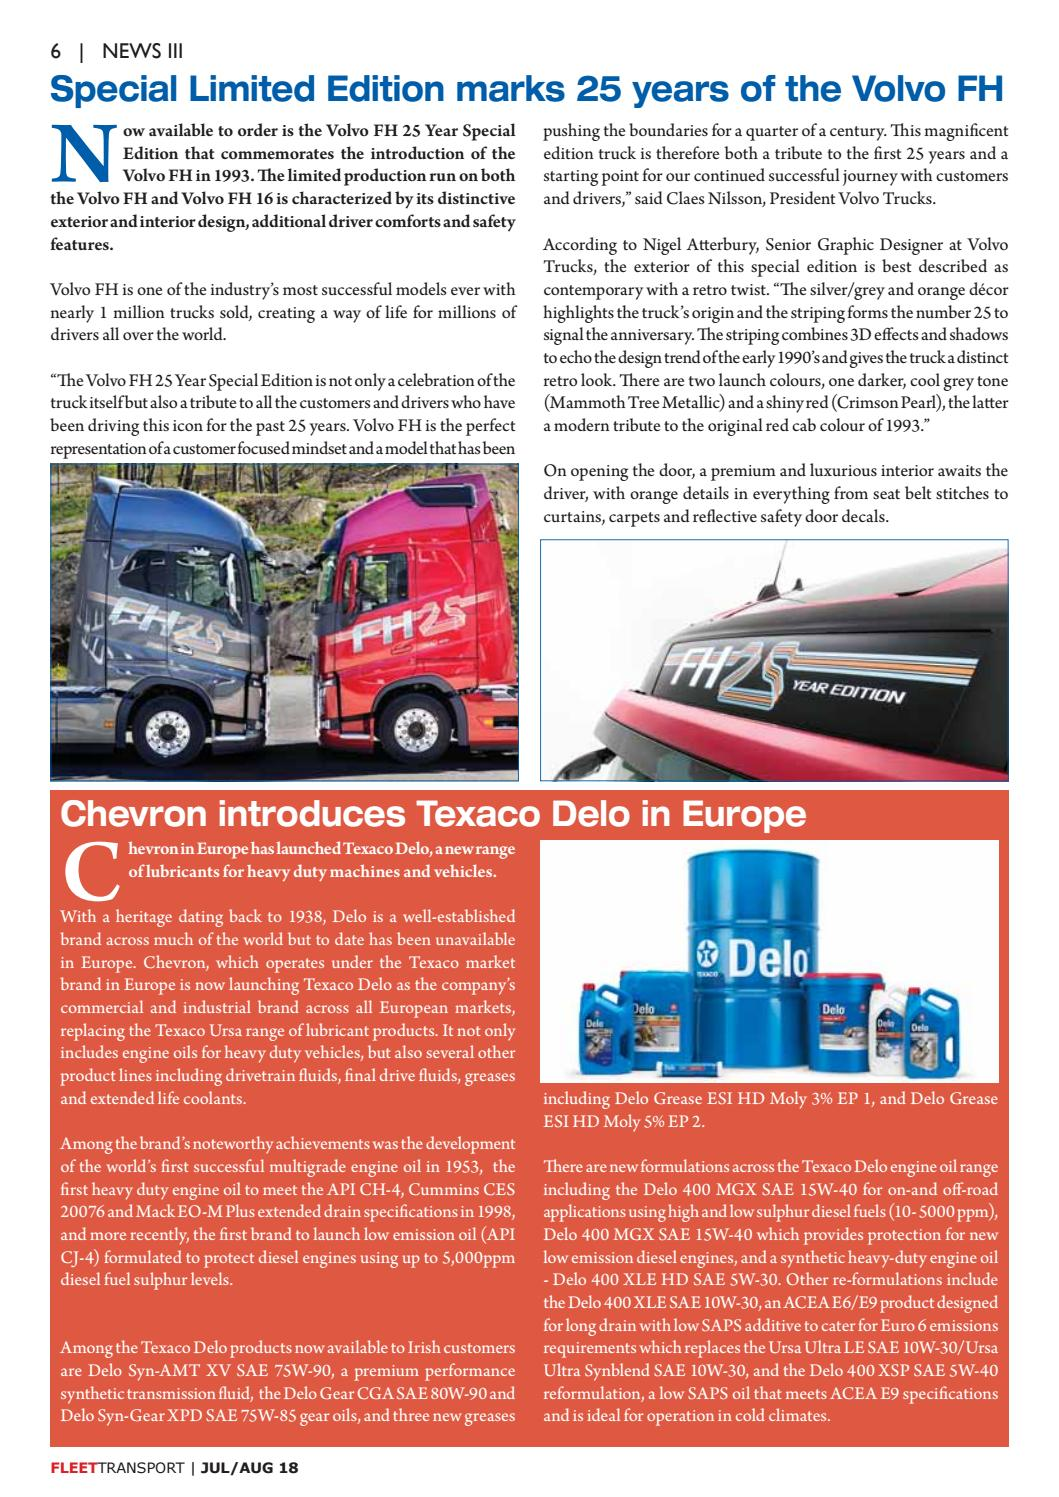 Fleet Transport Aug 2018 by Fleet Transport - issuu